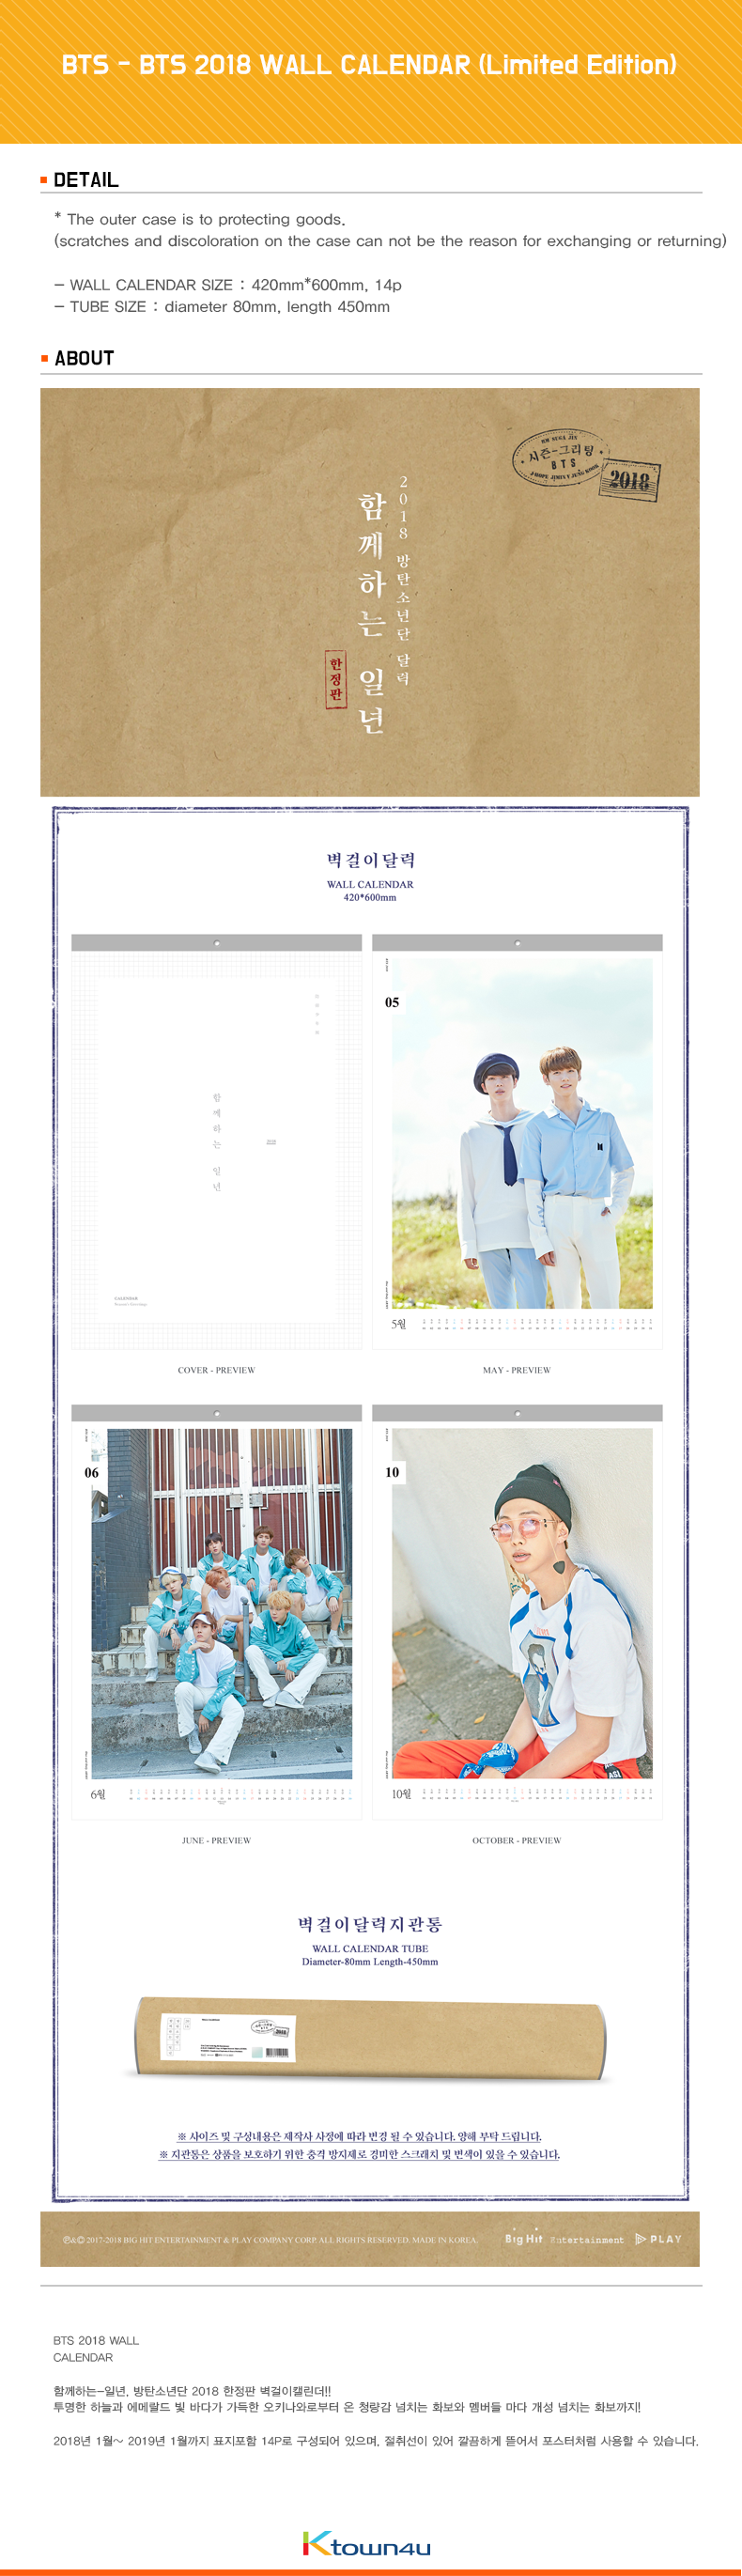 BTS - BTS 2018 WALL CALENDAR (Limited Edition)